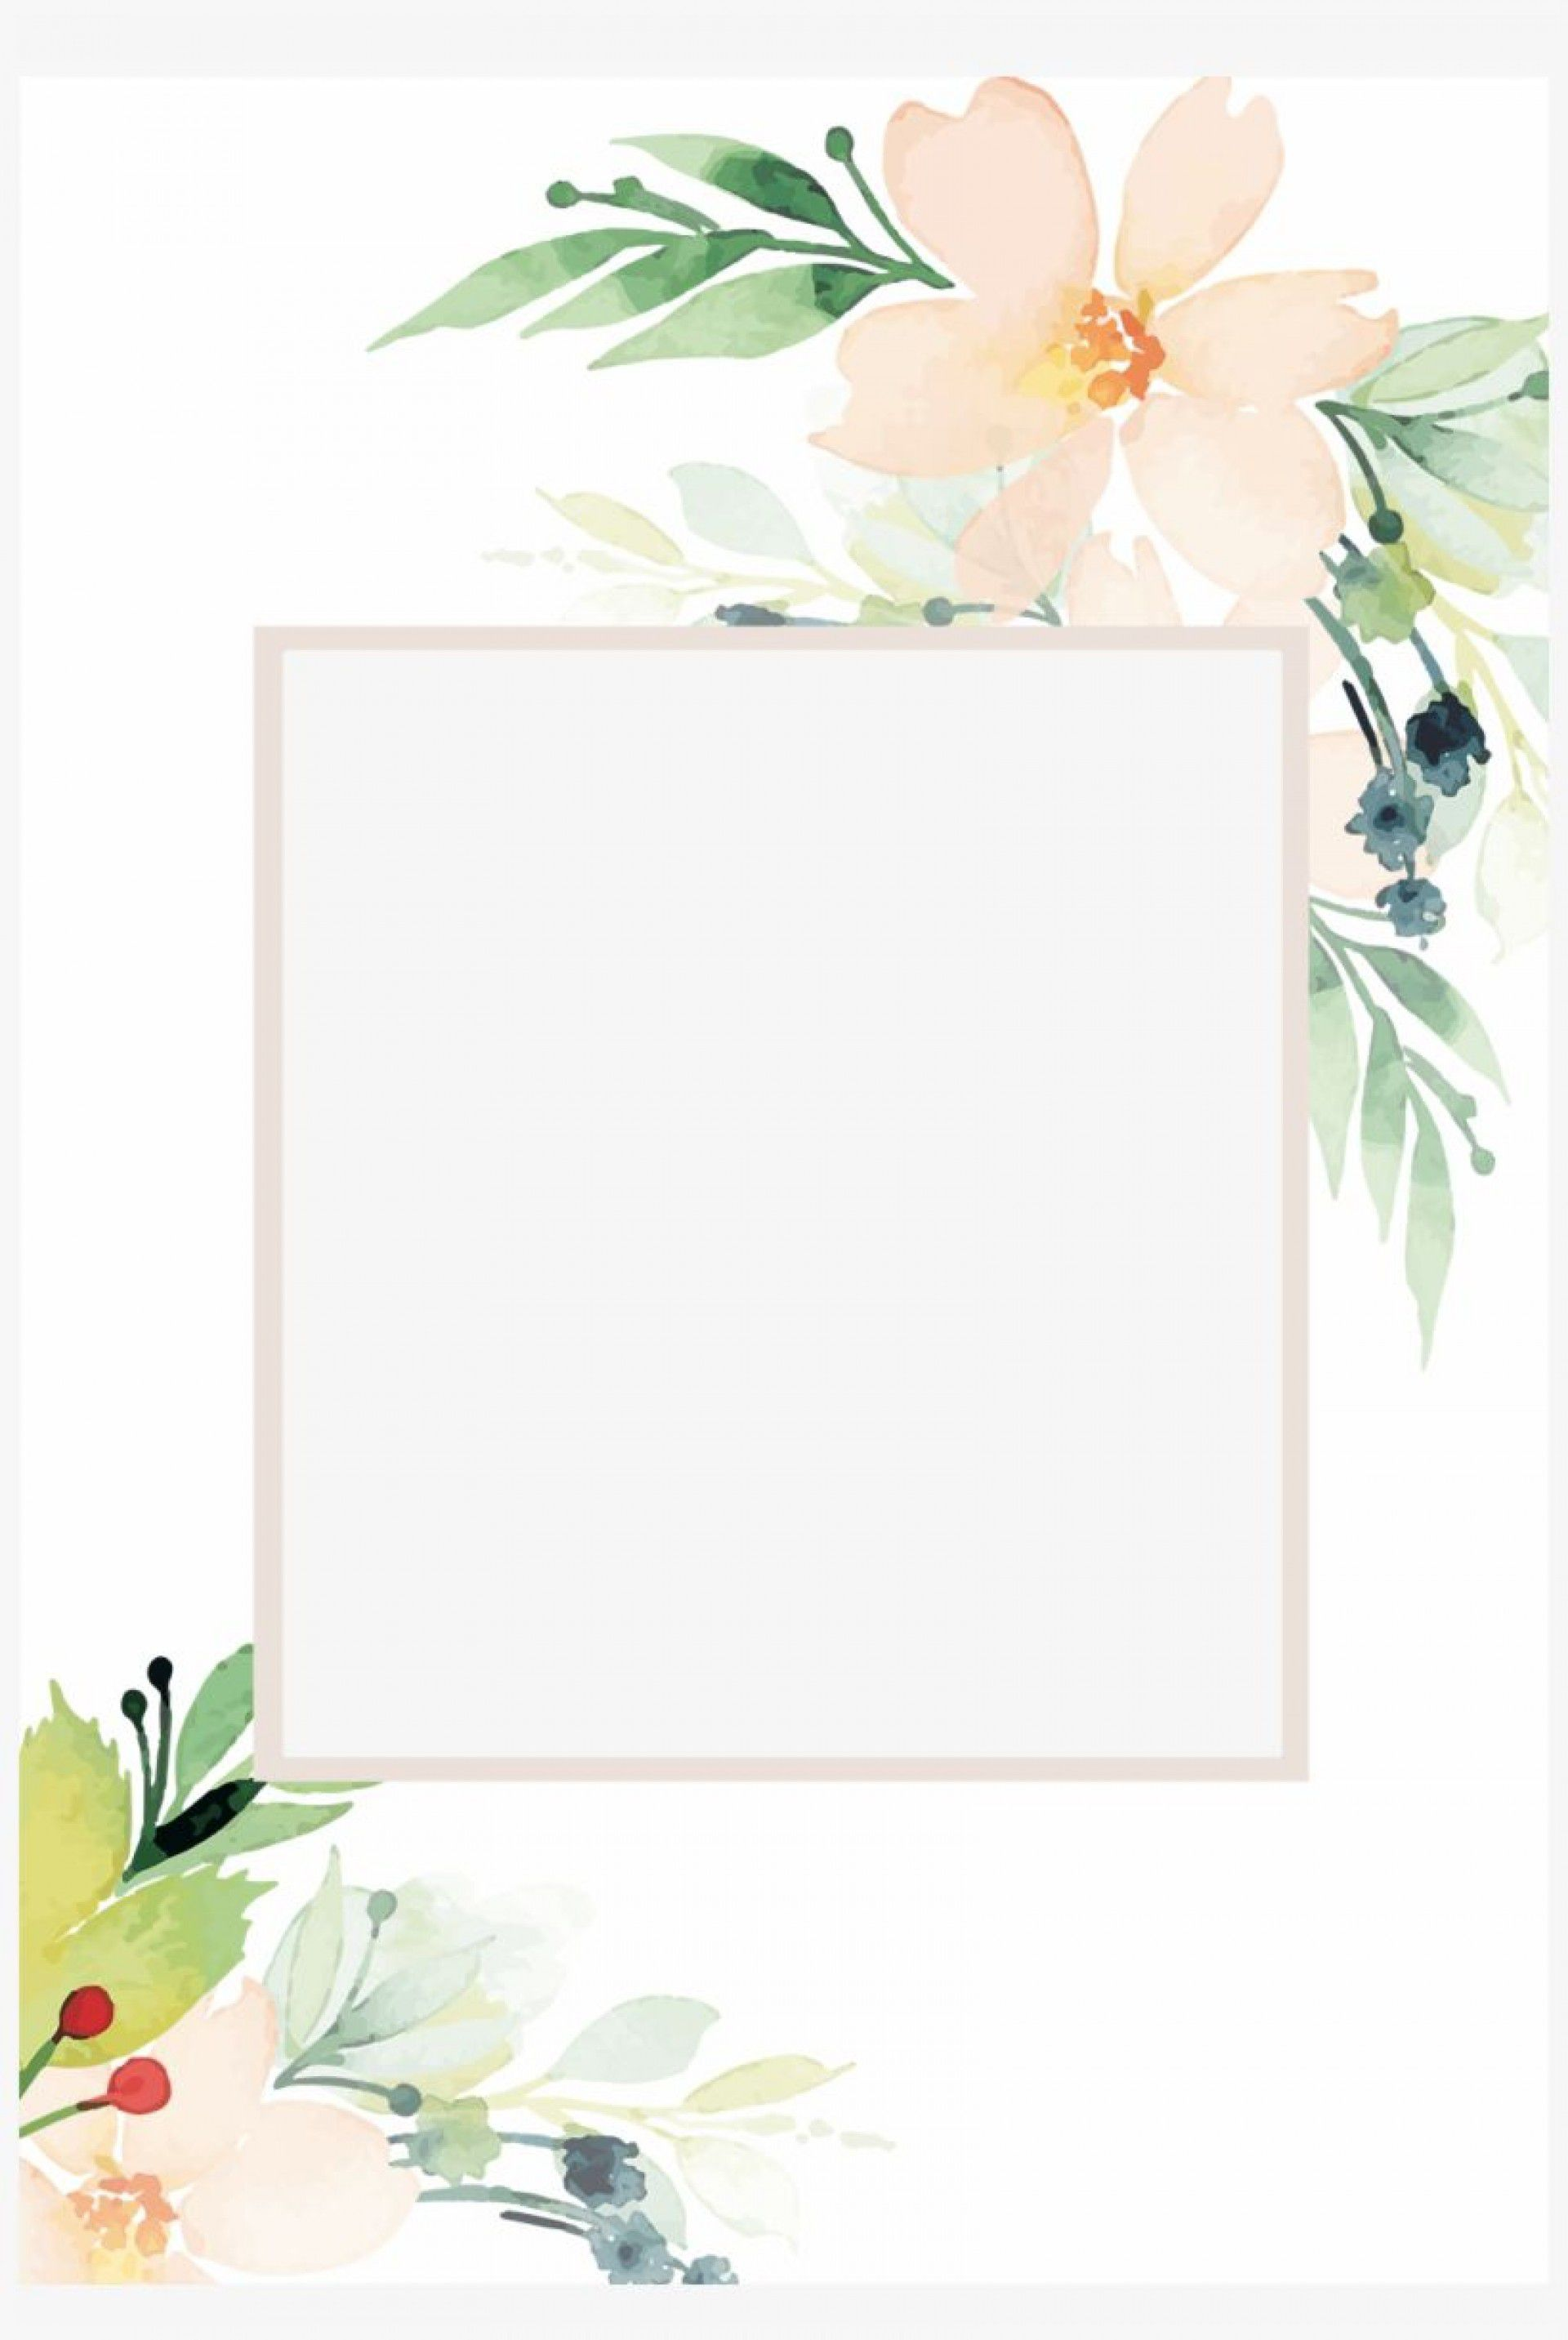 000 Unbelievable Free Printable Photo Card Template Concept  Templates Birthday Thank YouFull